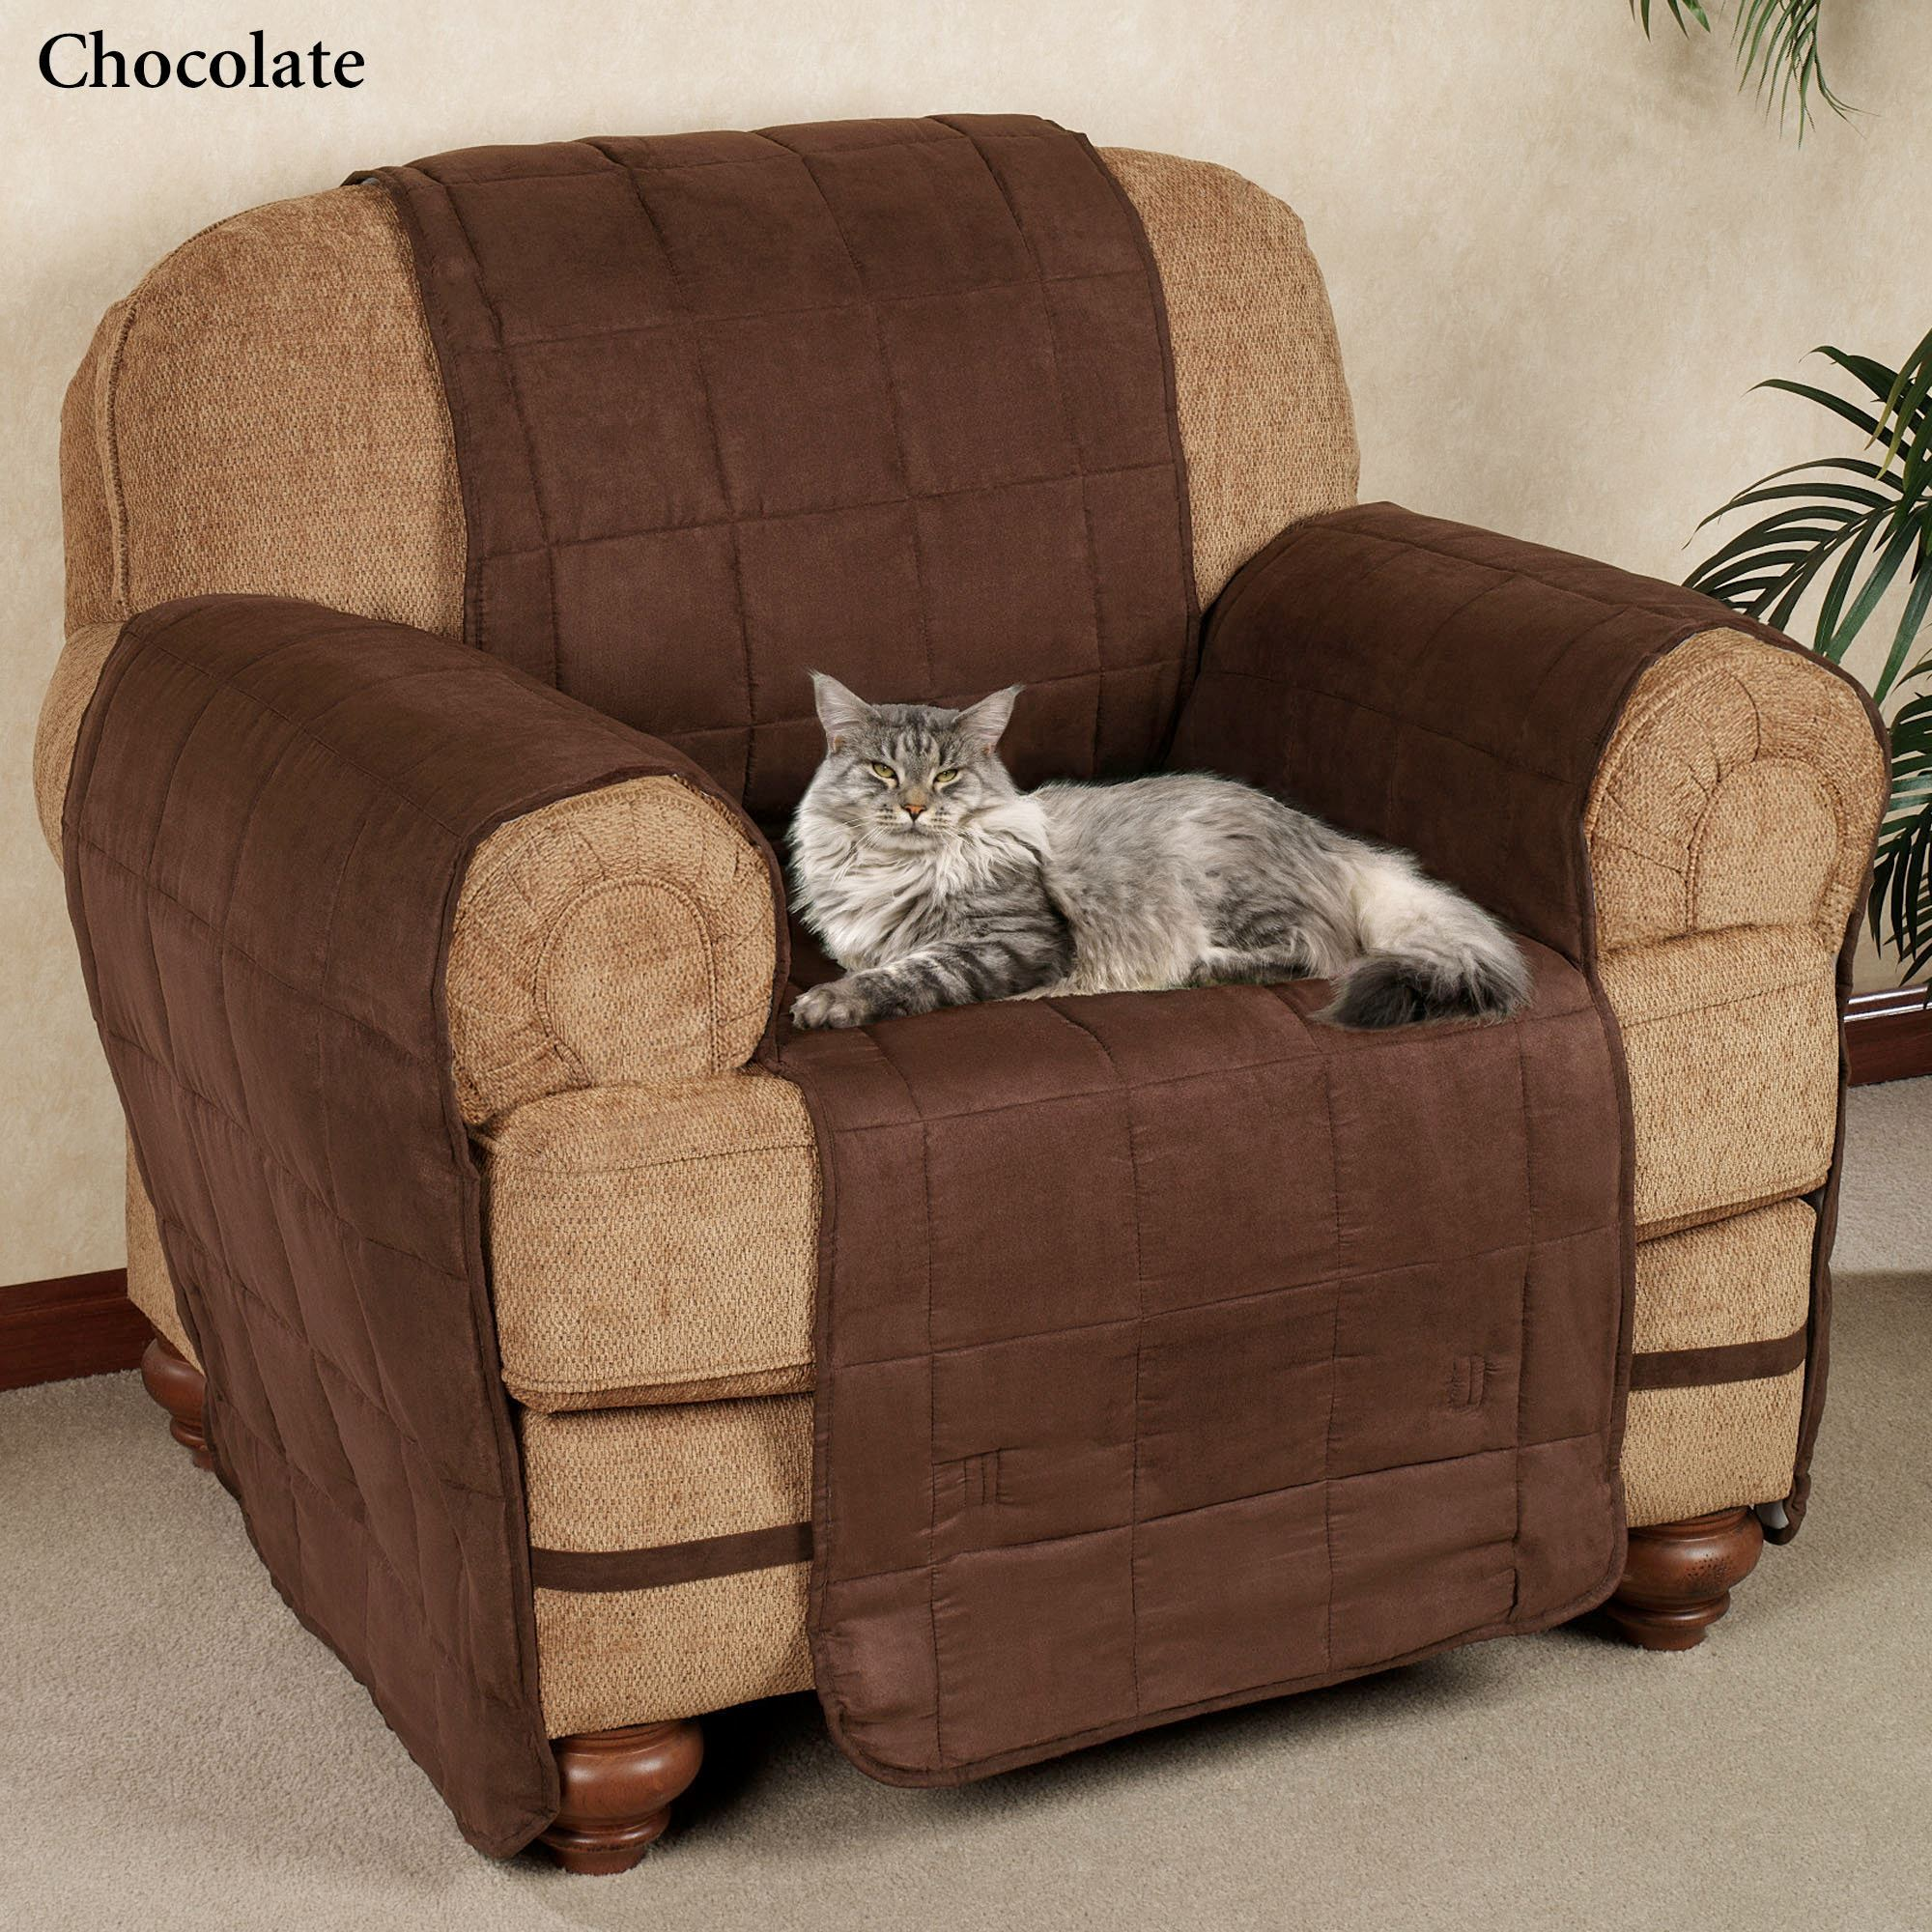 Pet Chair Covers Ultimate Pet Furniture Protectors With Straps